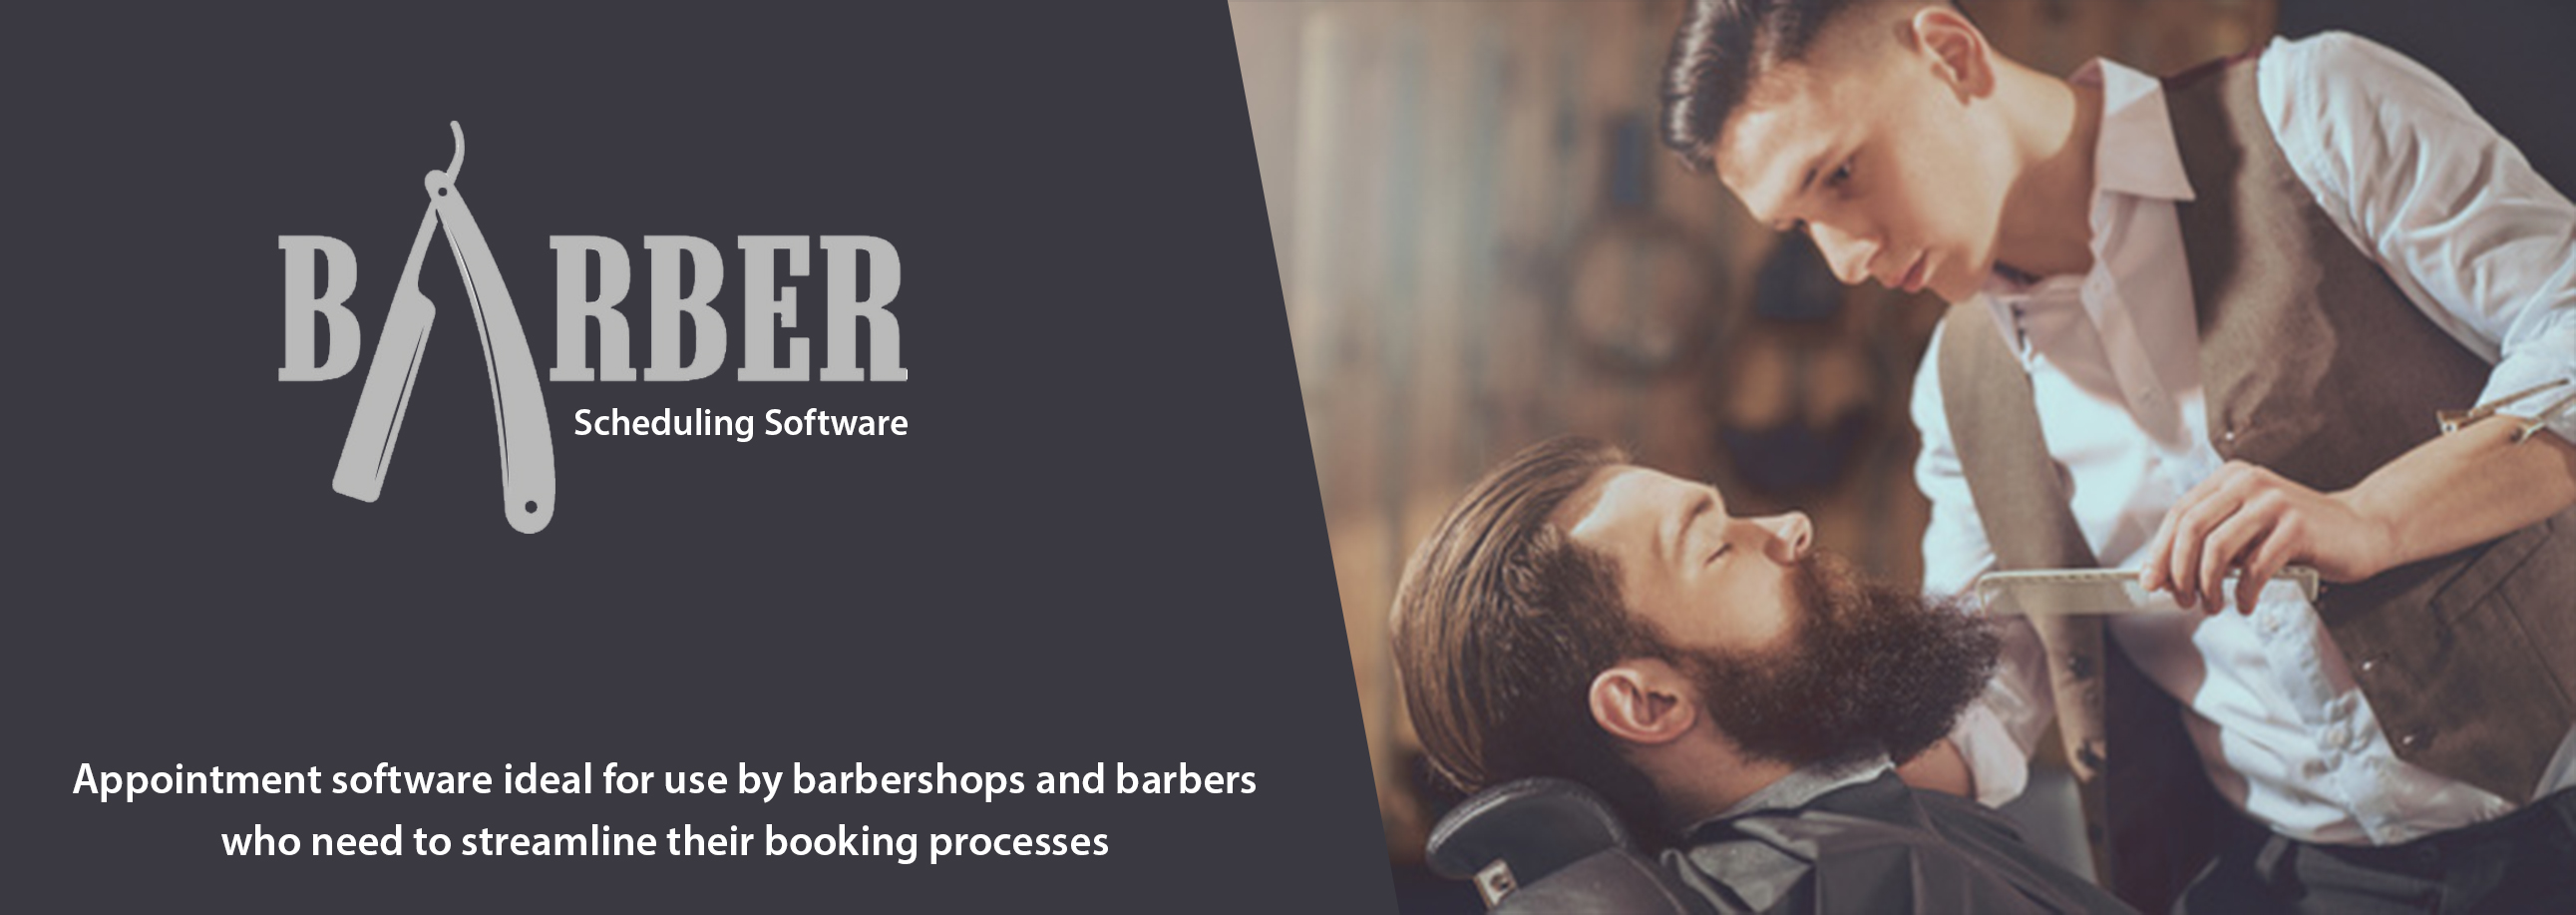 barber-scheduling-software